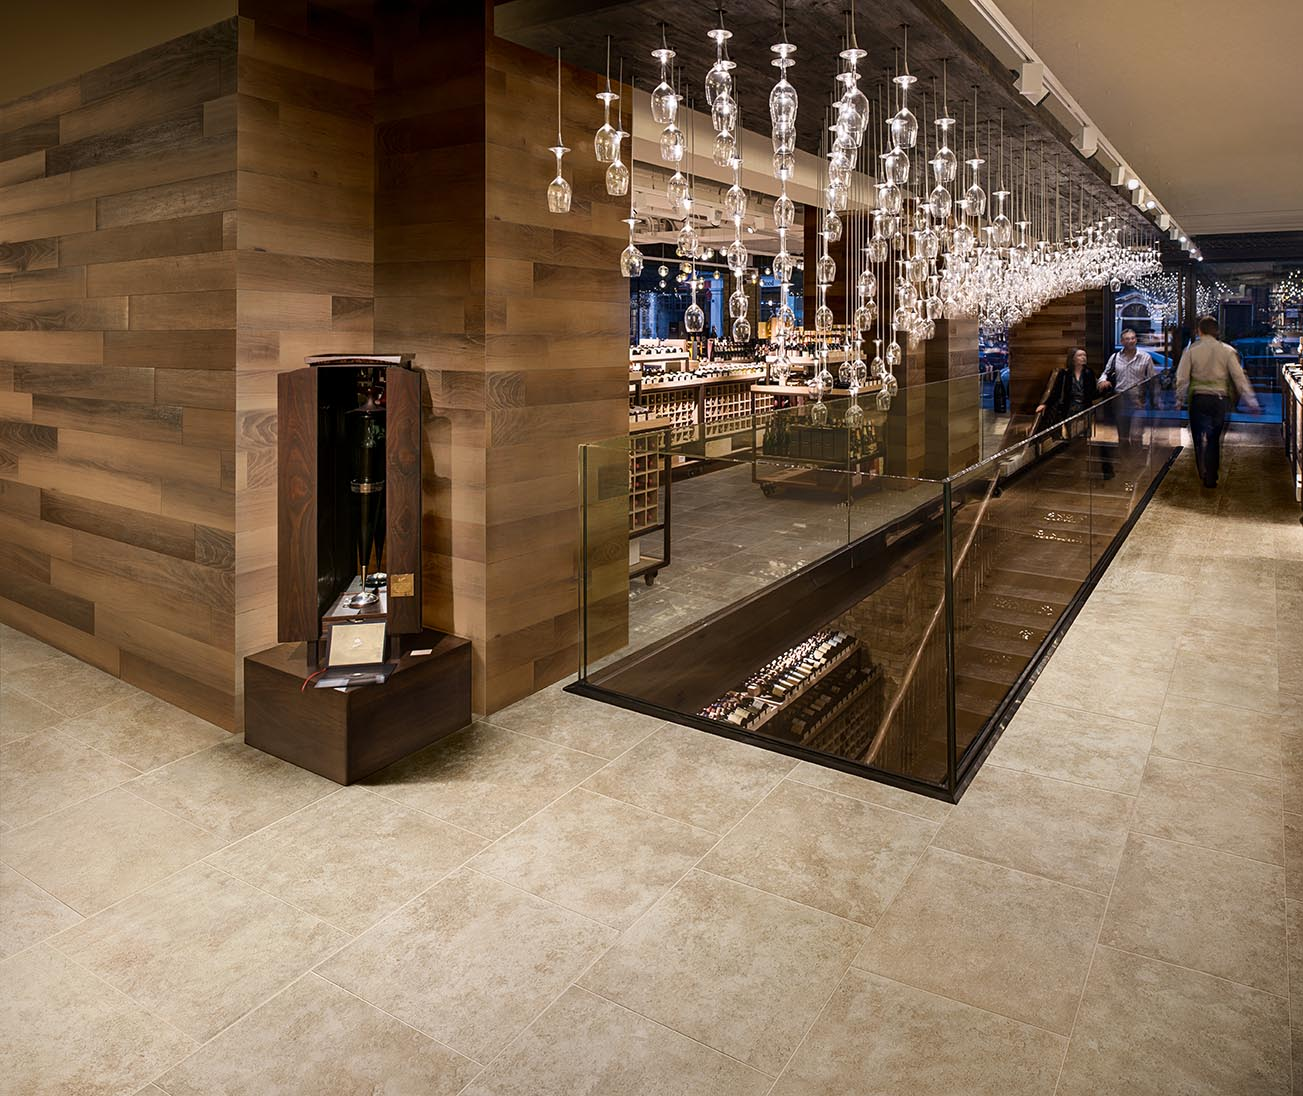 Hedonism Wines, Showroom, Europe, United Kingdom, , 2012, Universal Design Studio, Speirs + Major. Ground Floor view with chandelier.